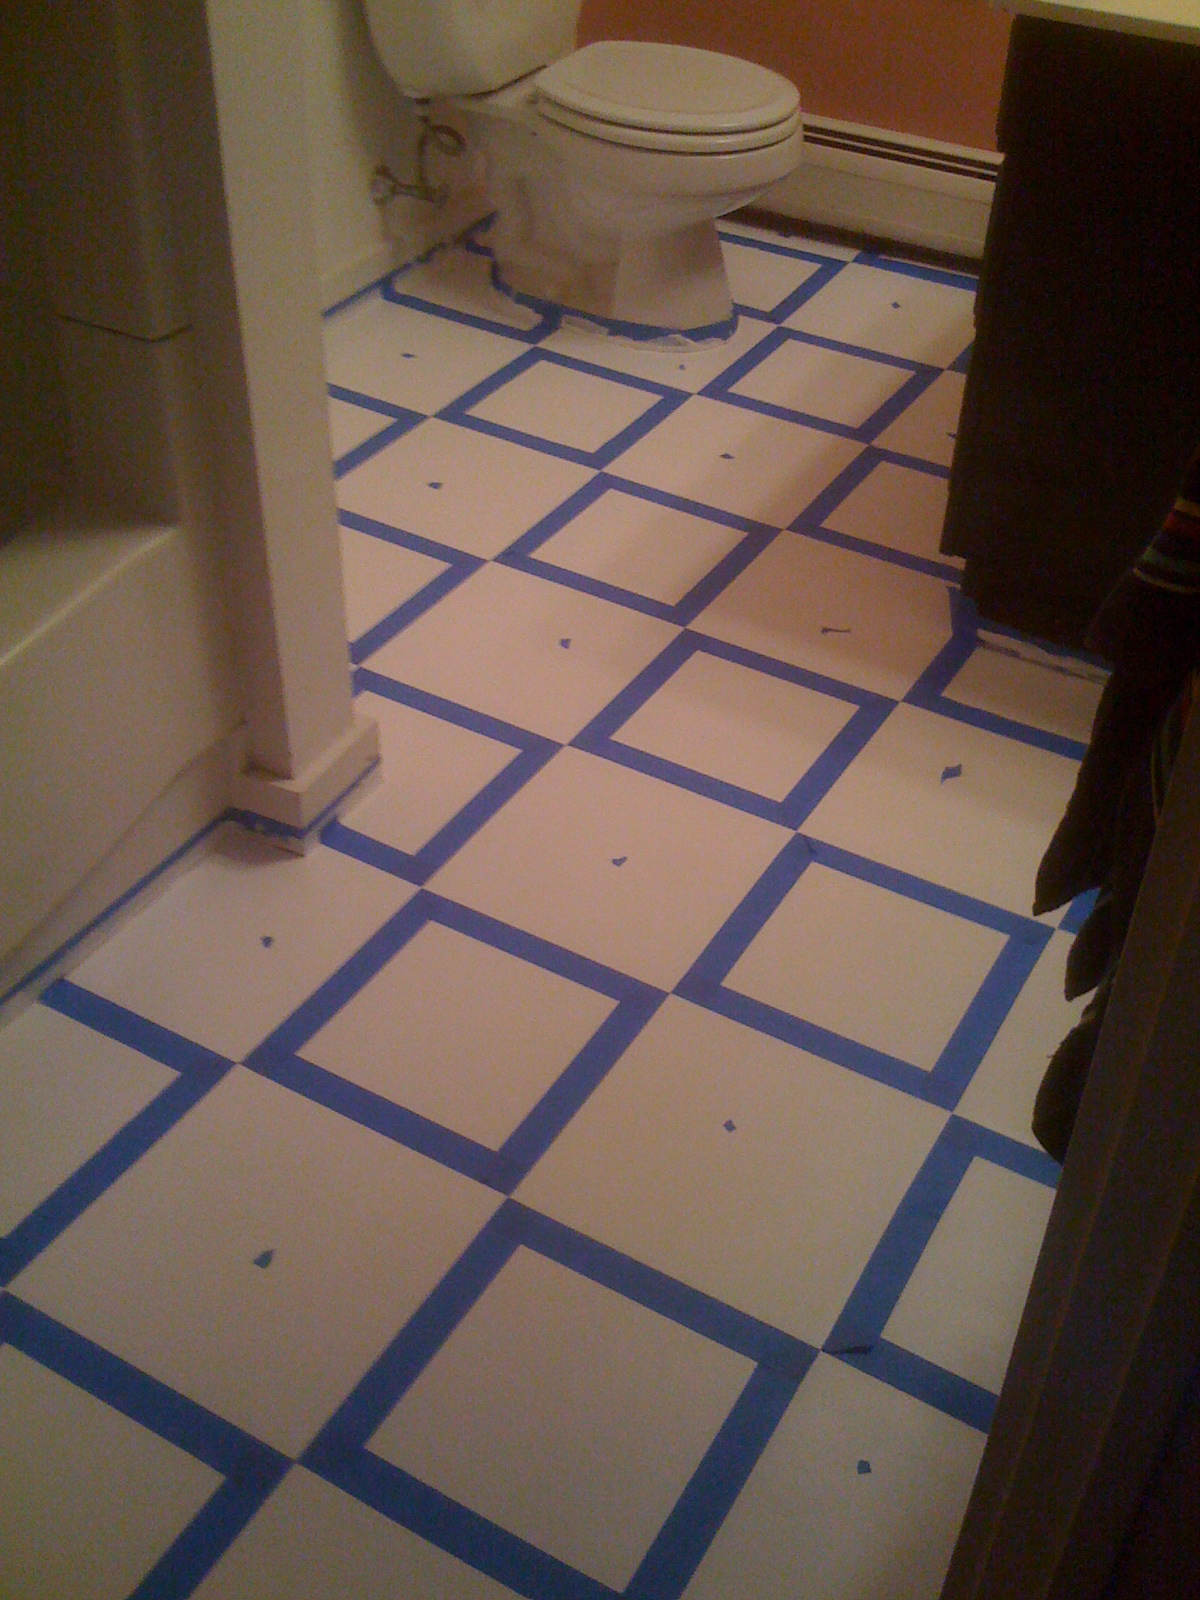 Painting Bathroom Tile Floor diy | mary wiseman designs